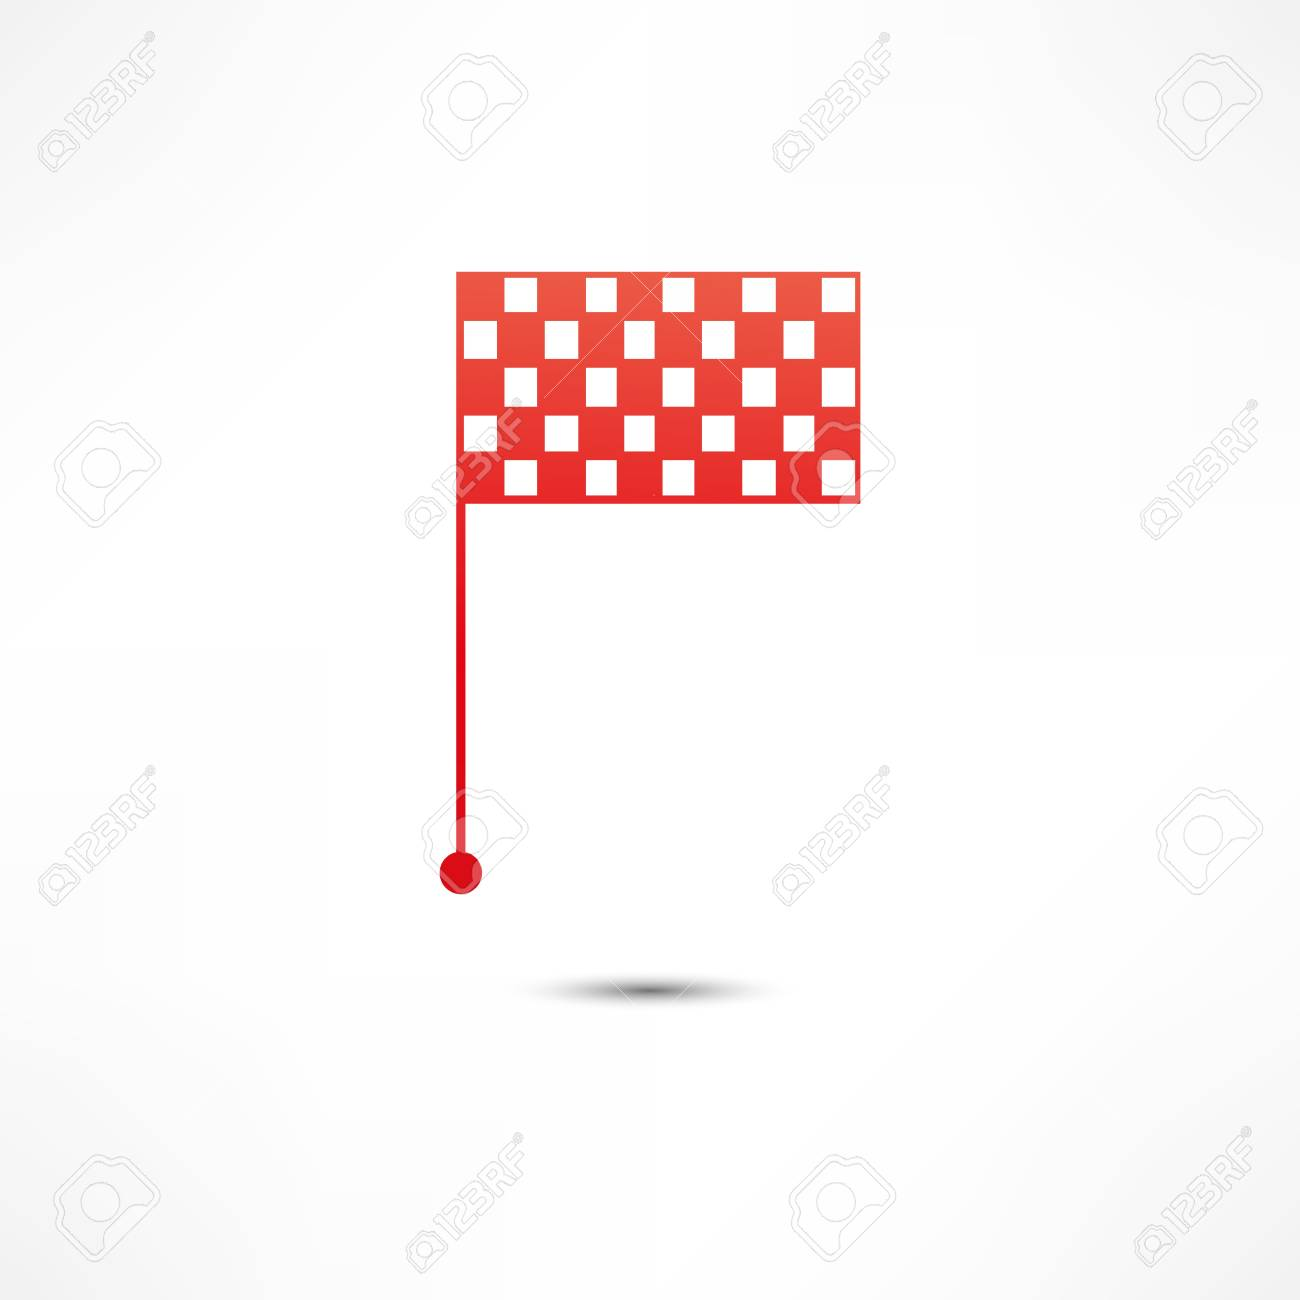 racing flags icon Stock Vector - 16669153